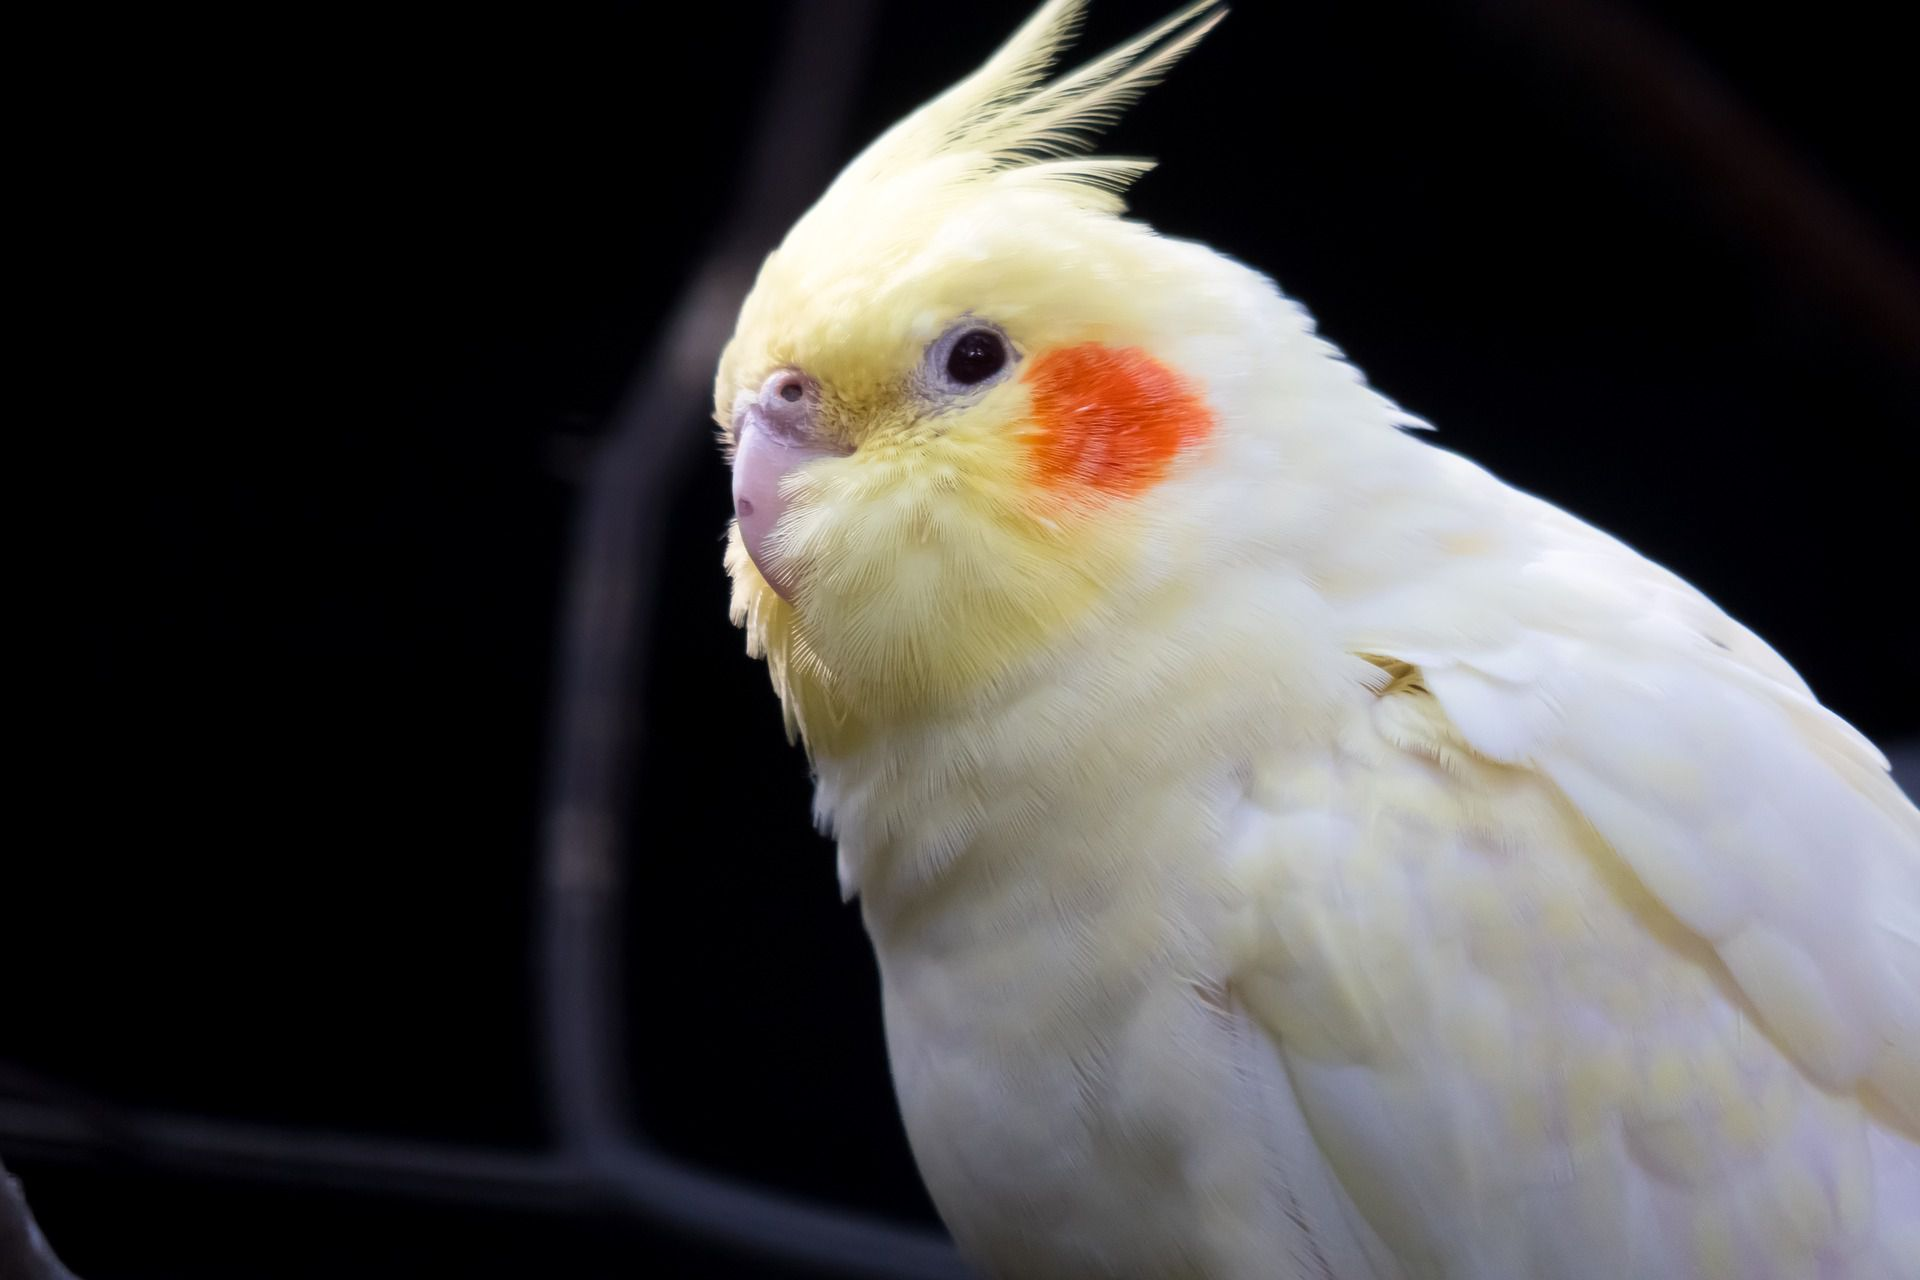 A close-up of a cockatiel.